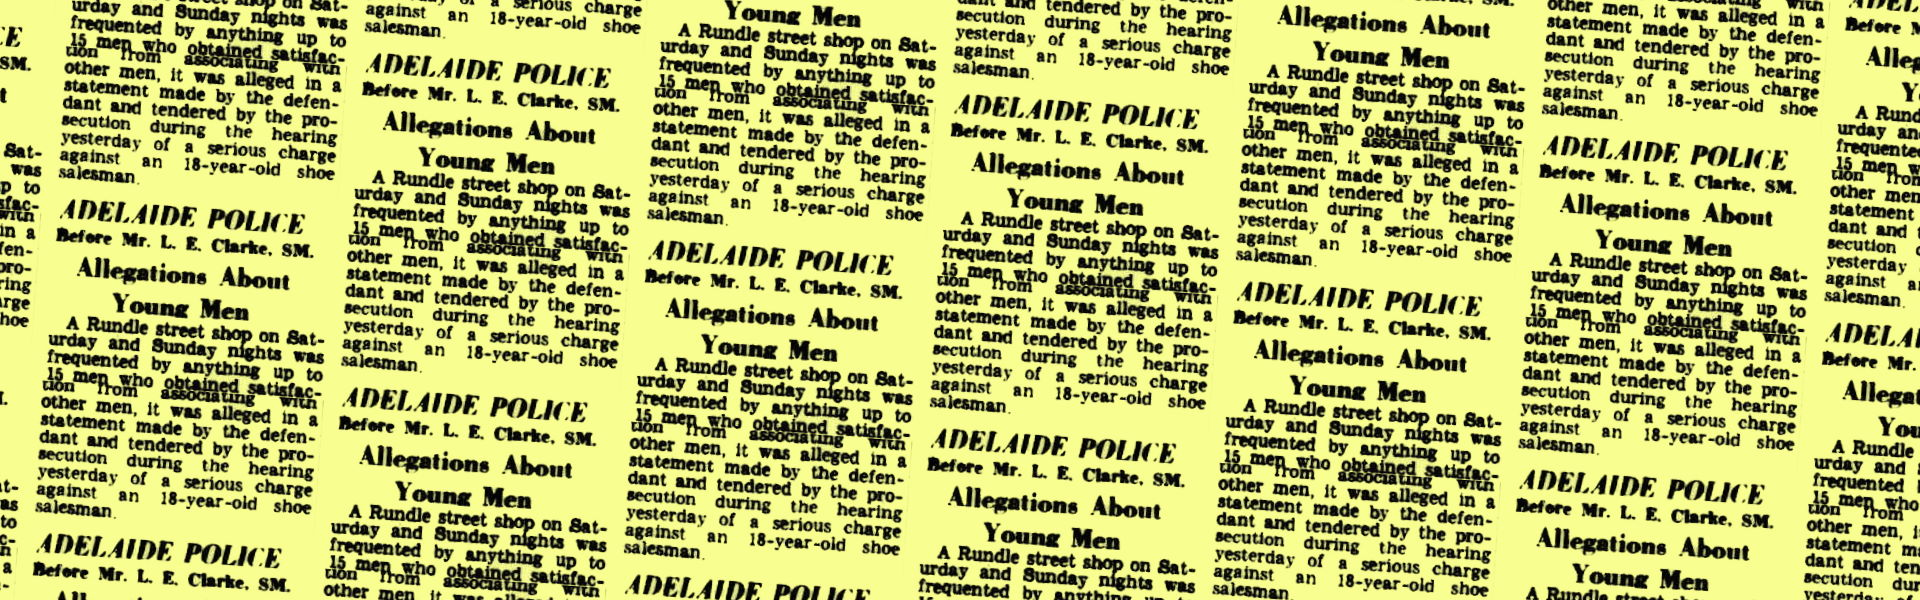 Allegations about young men, Advertiser (Adelaide, SA), 22 February 1950, p5 – Banner